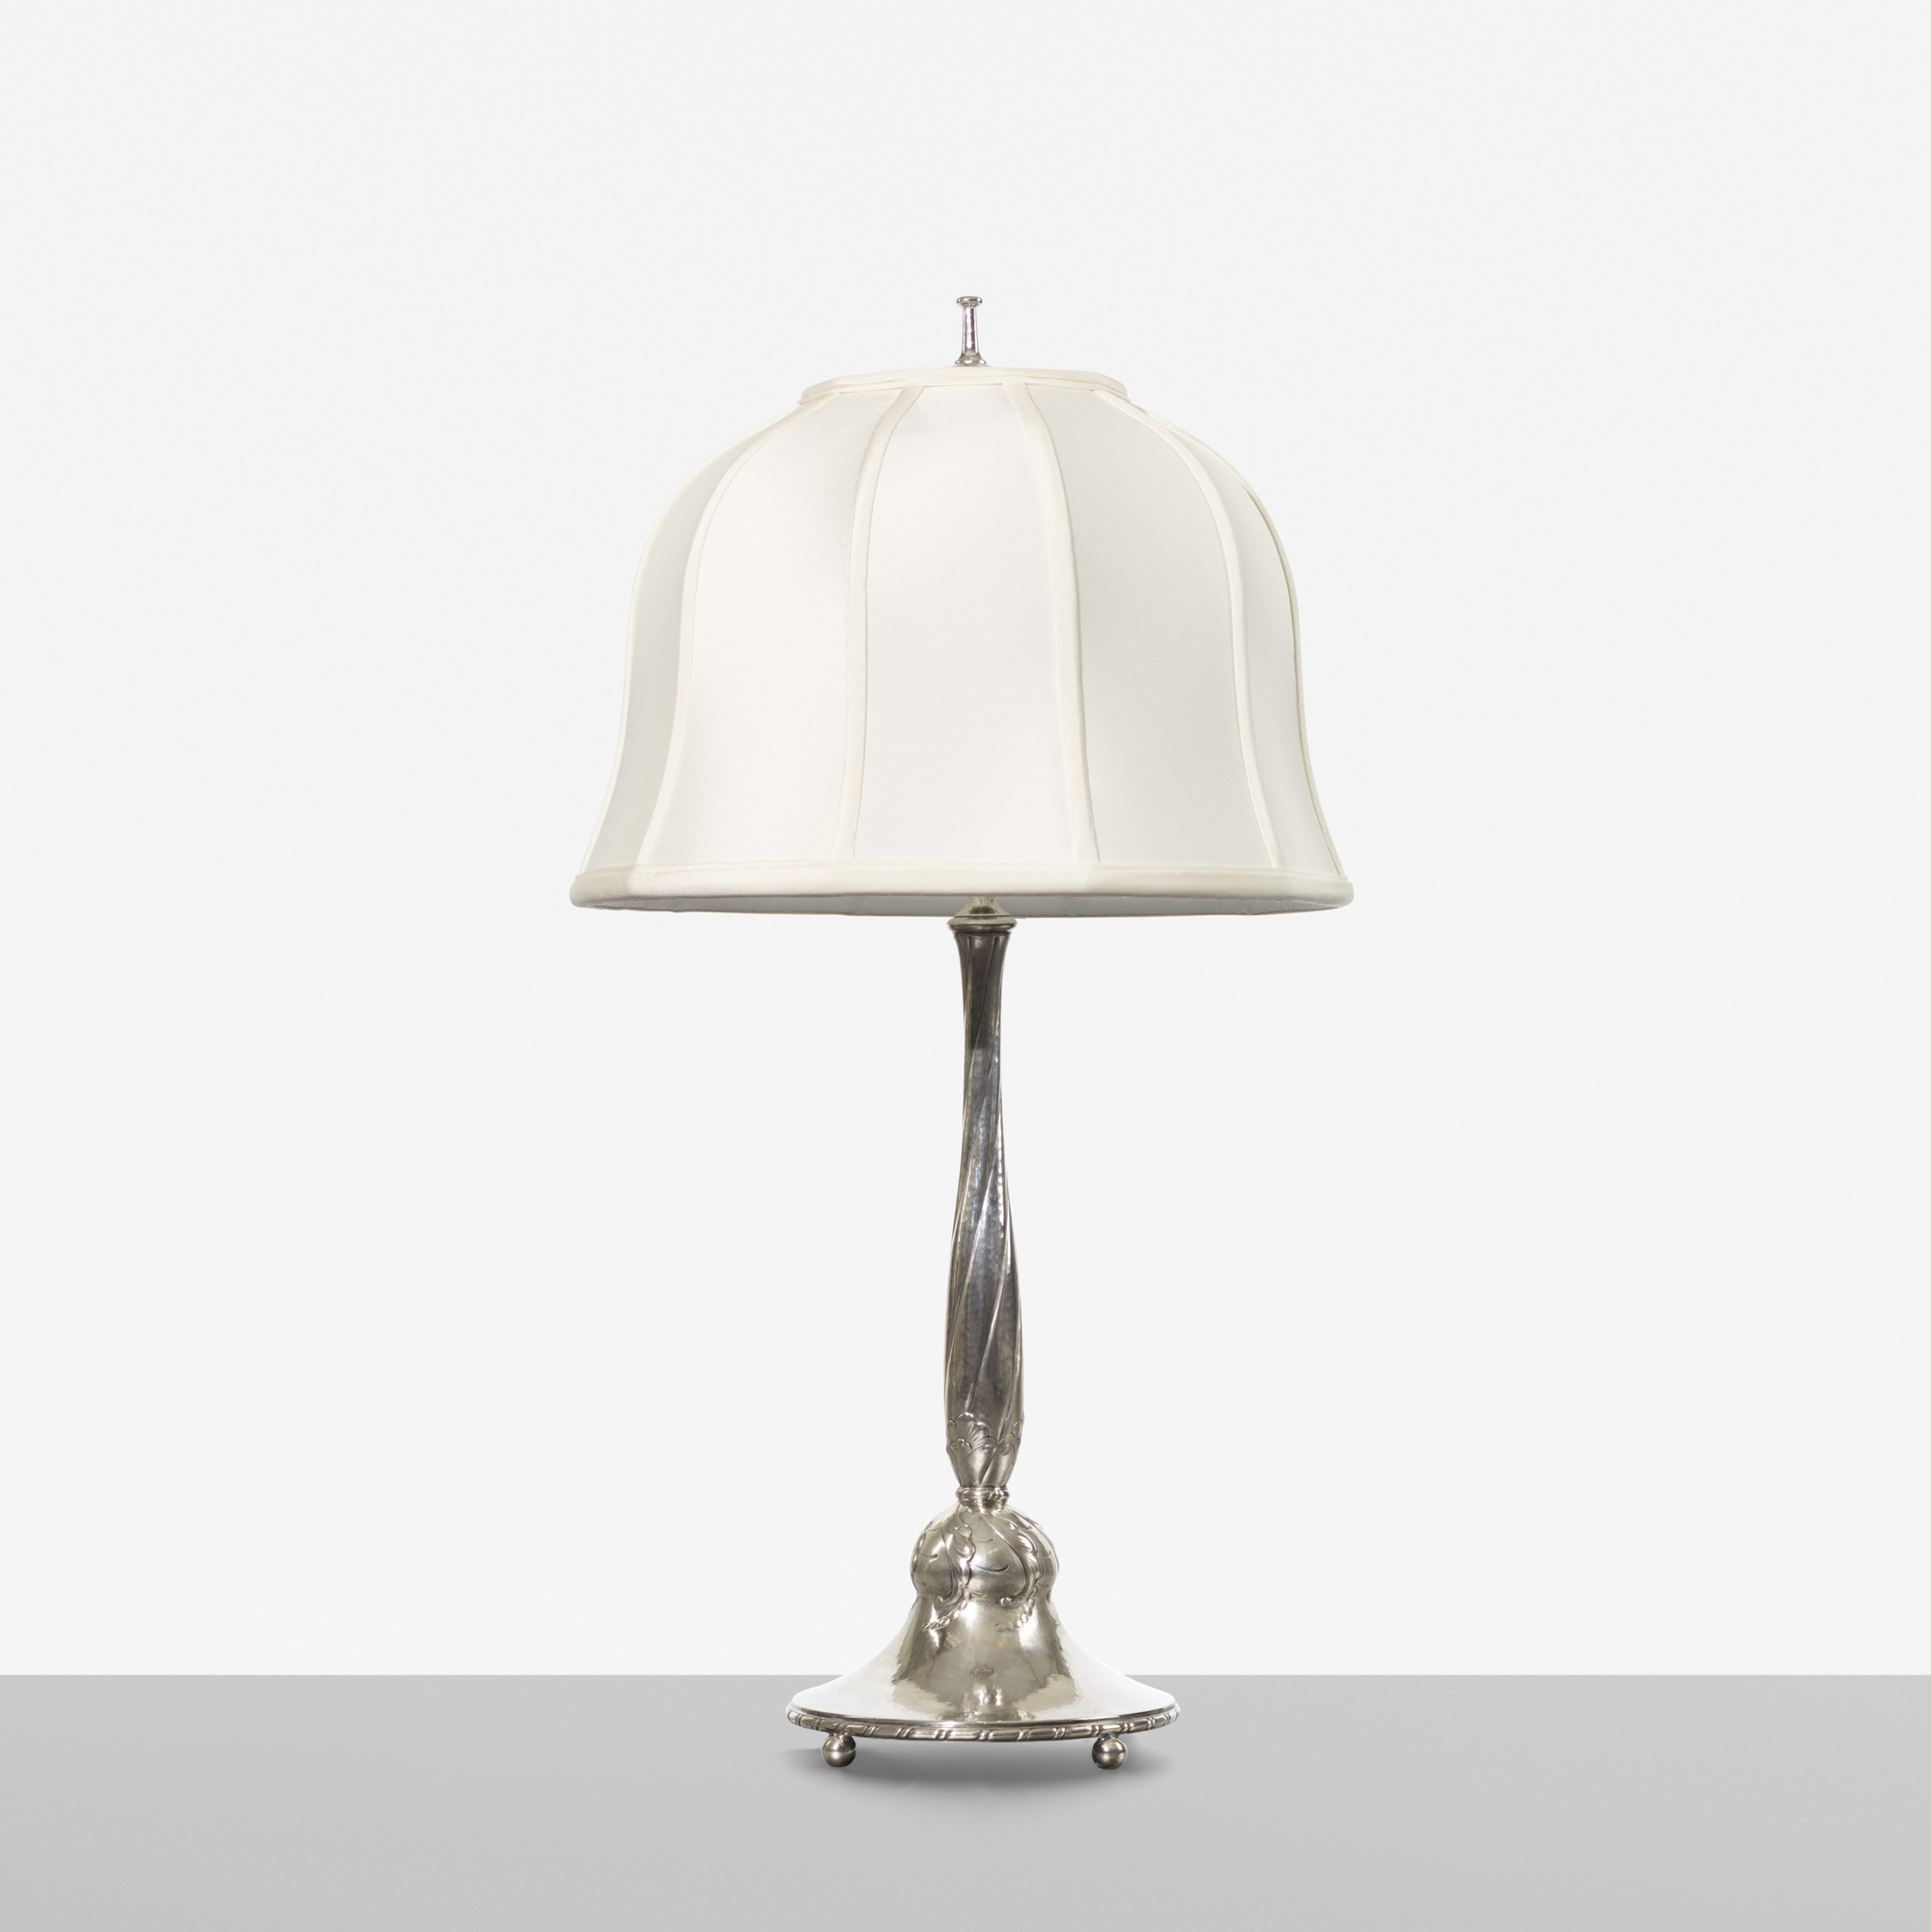 258: K. Anderson / table lamp (1 of 1)